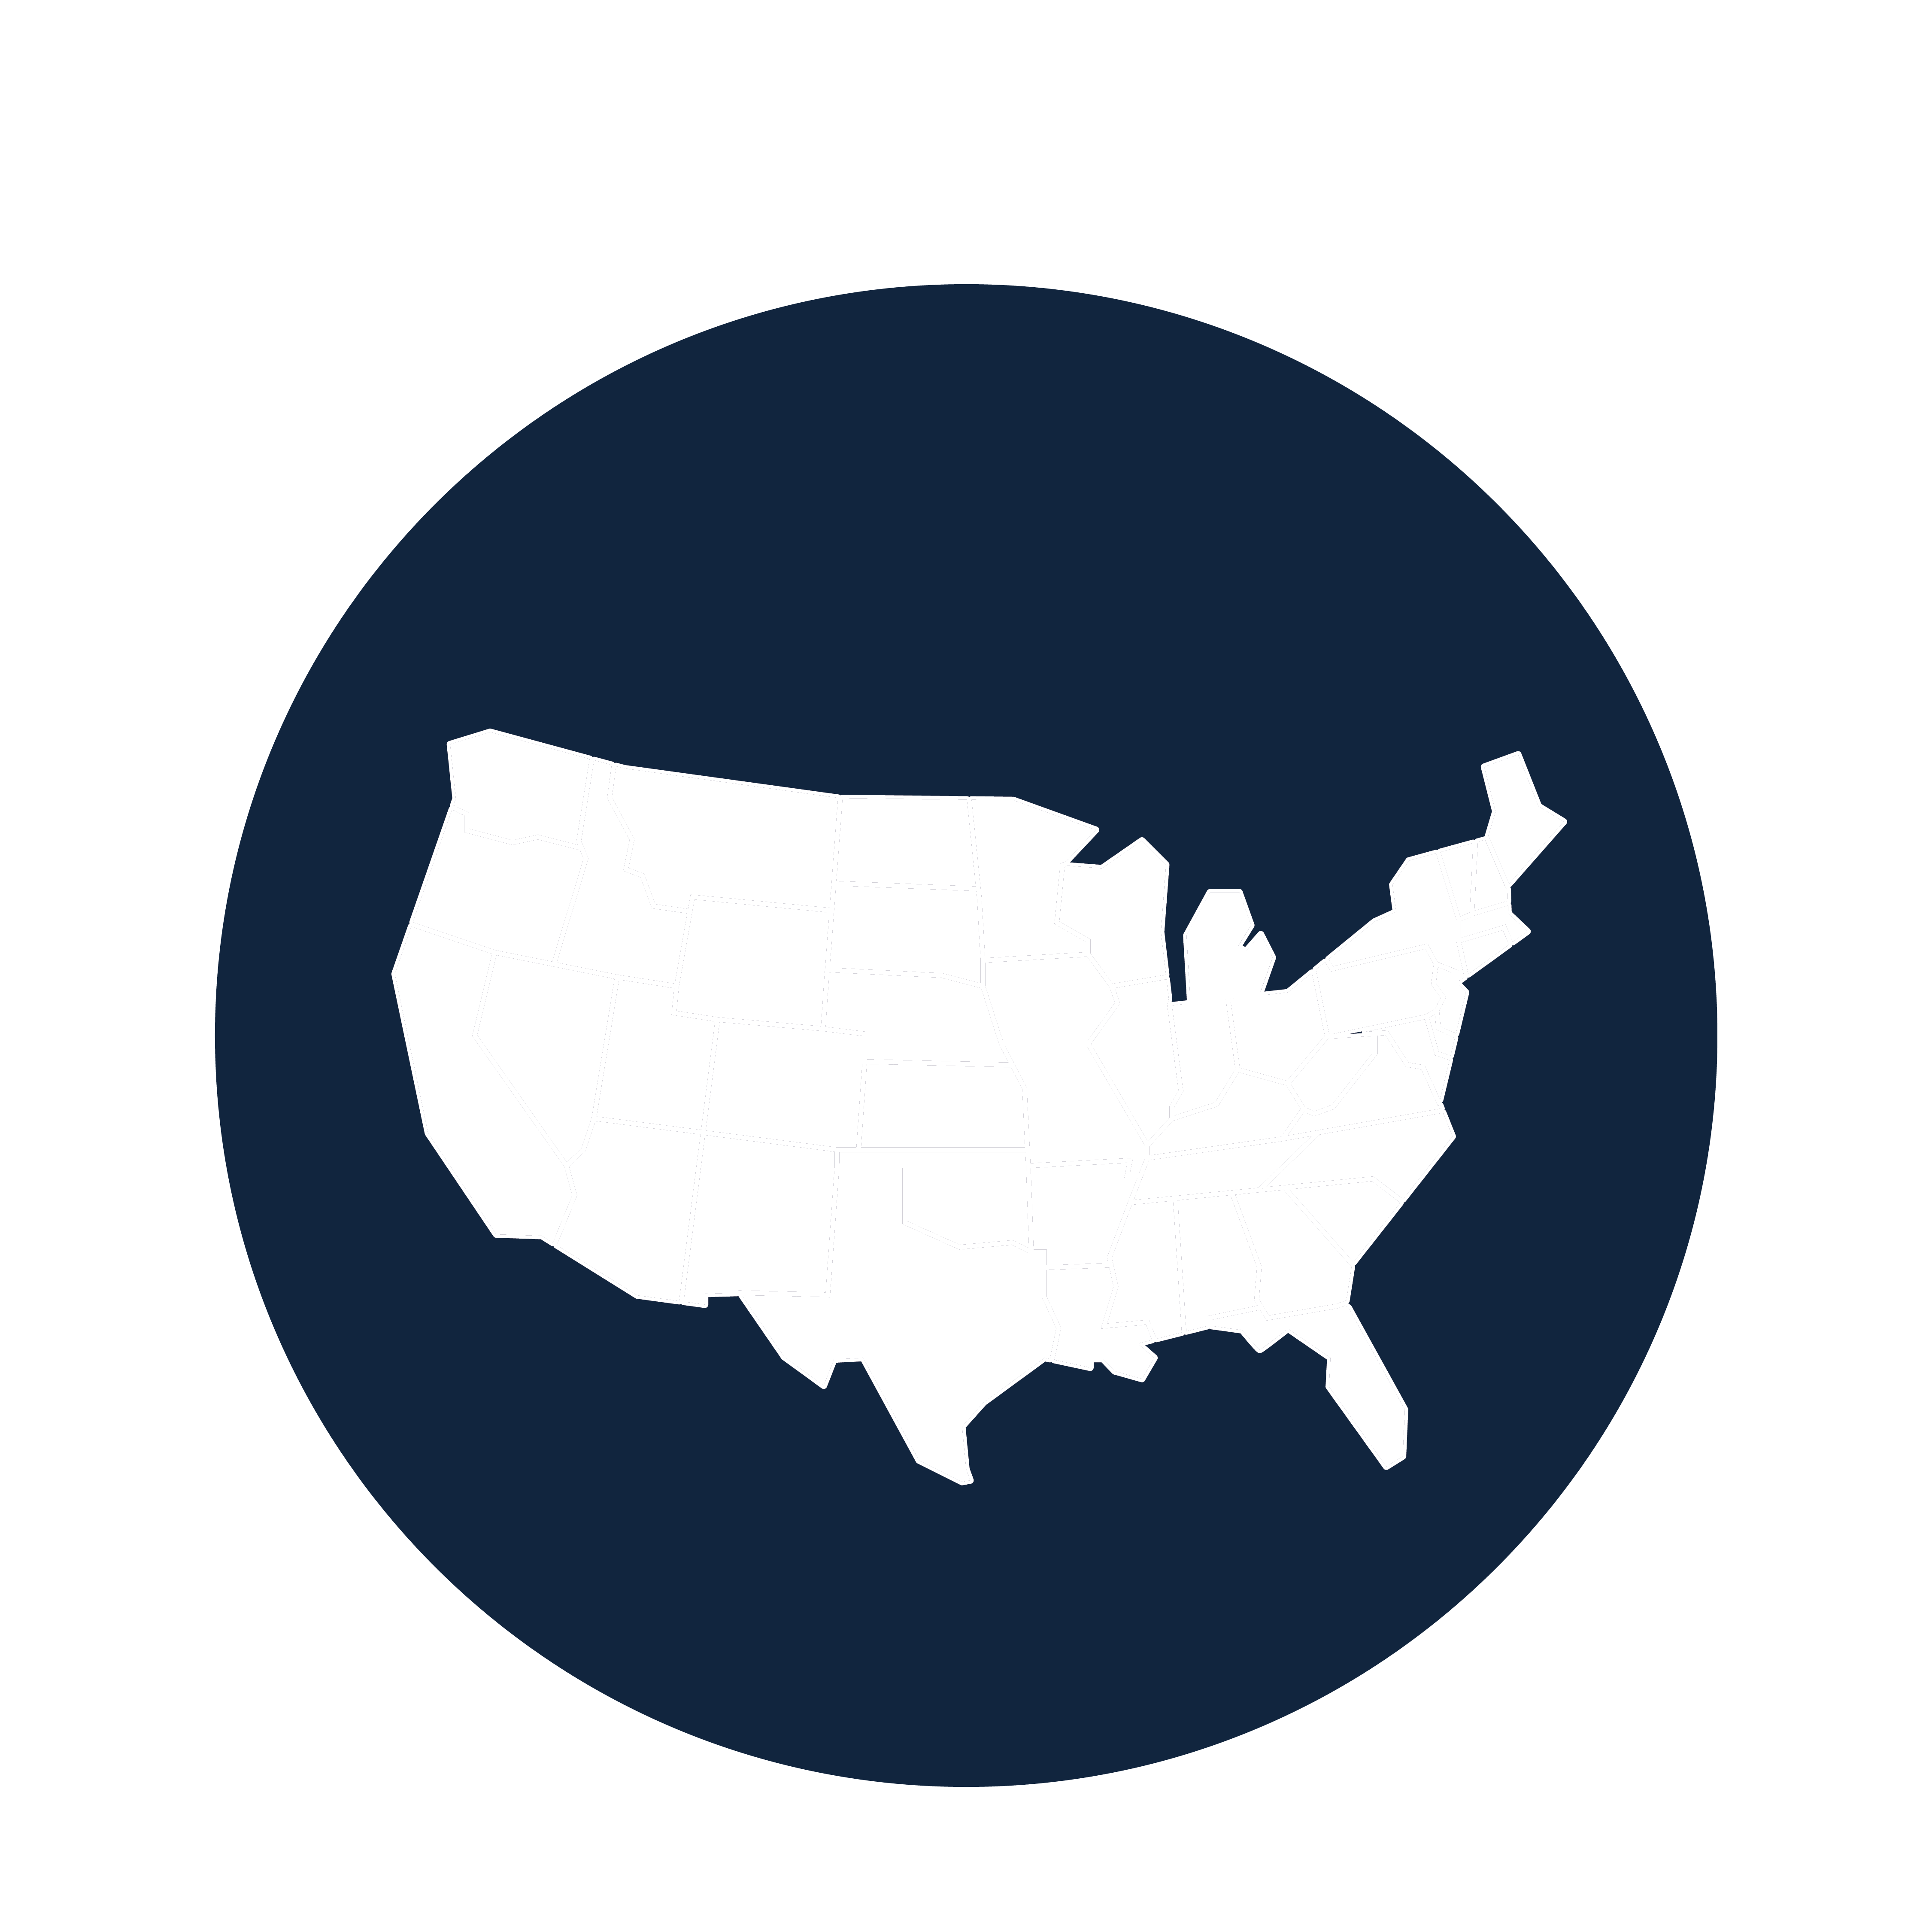 State icon to represent the number of states involved in the Young Alumni and Black Alumni Councils